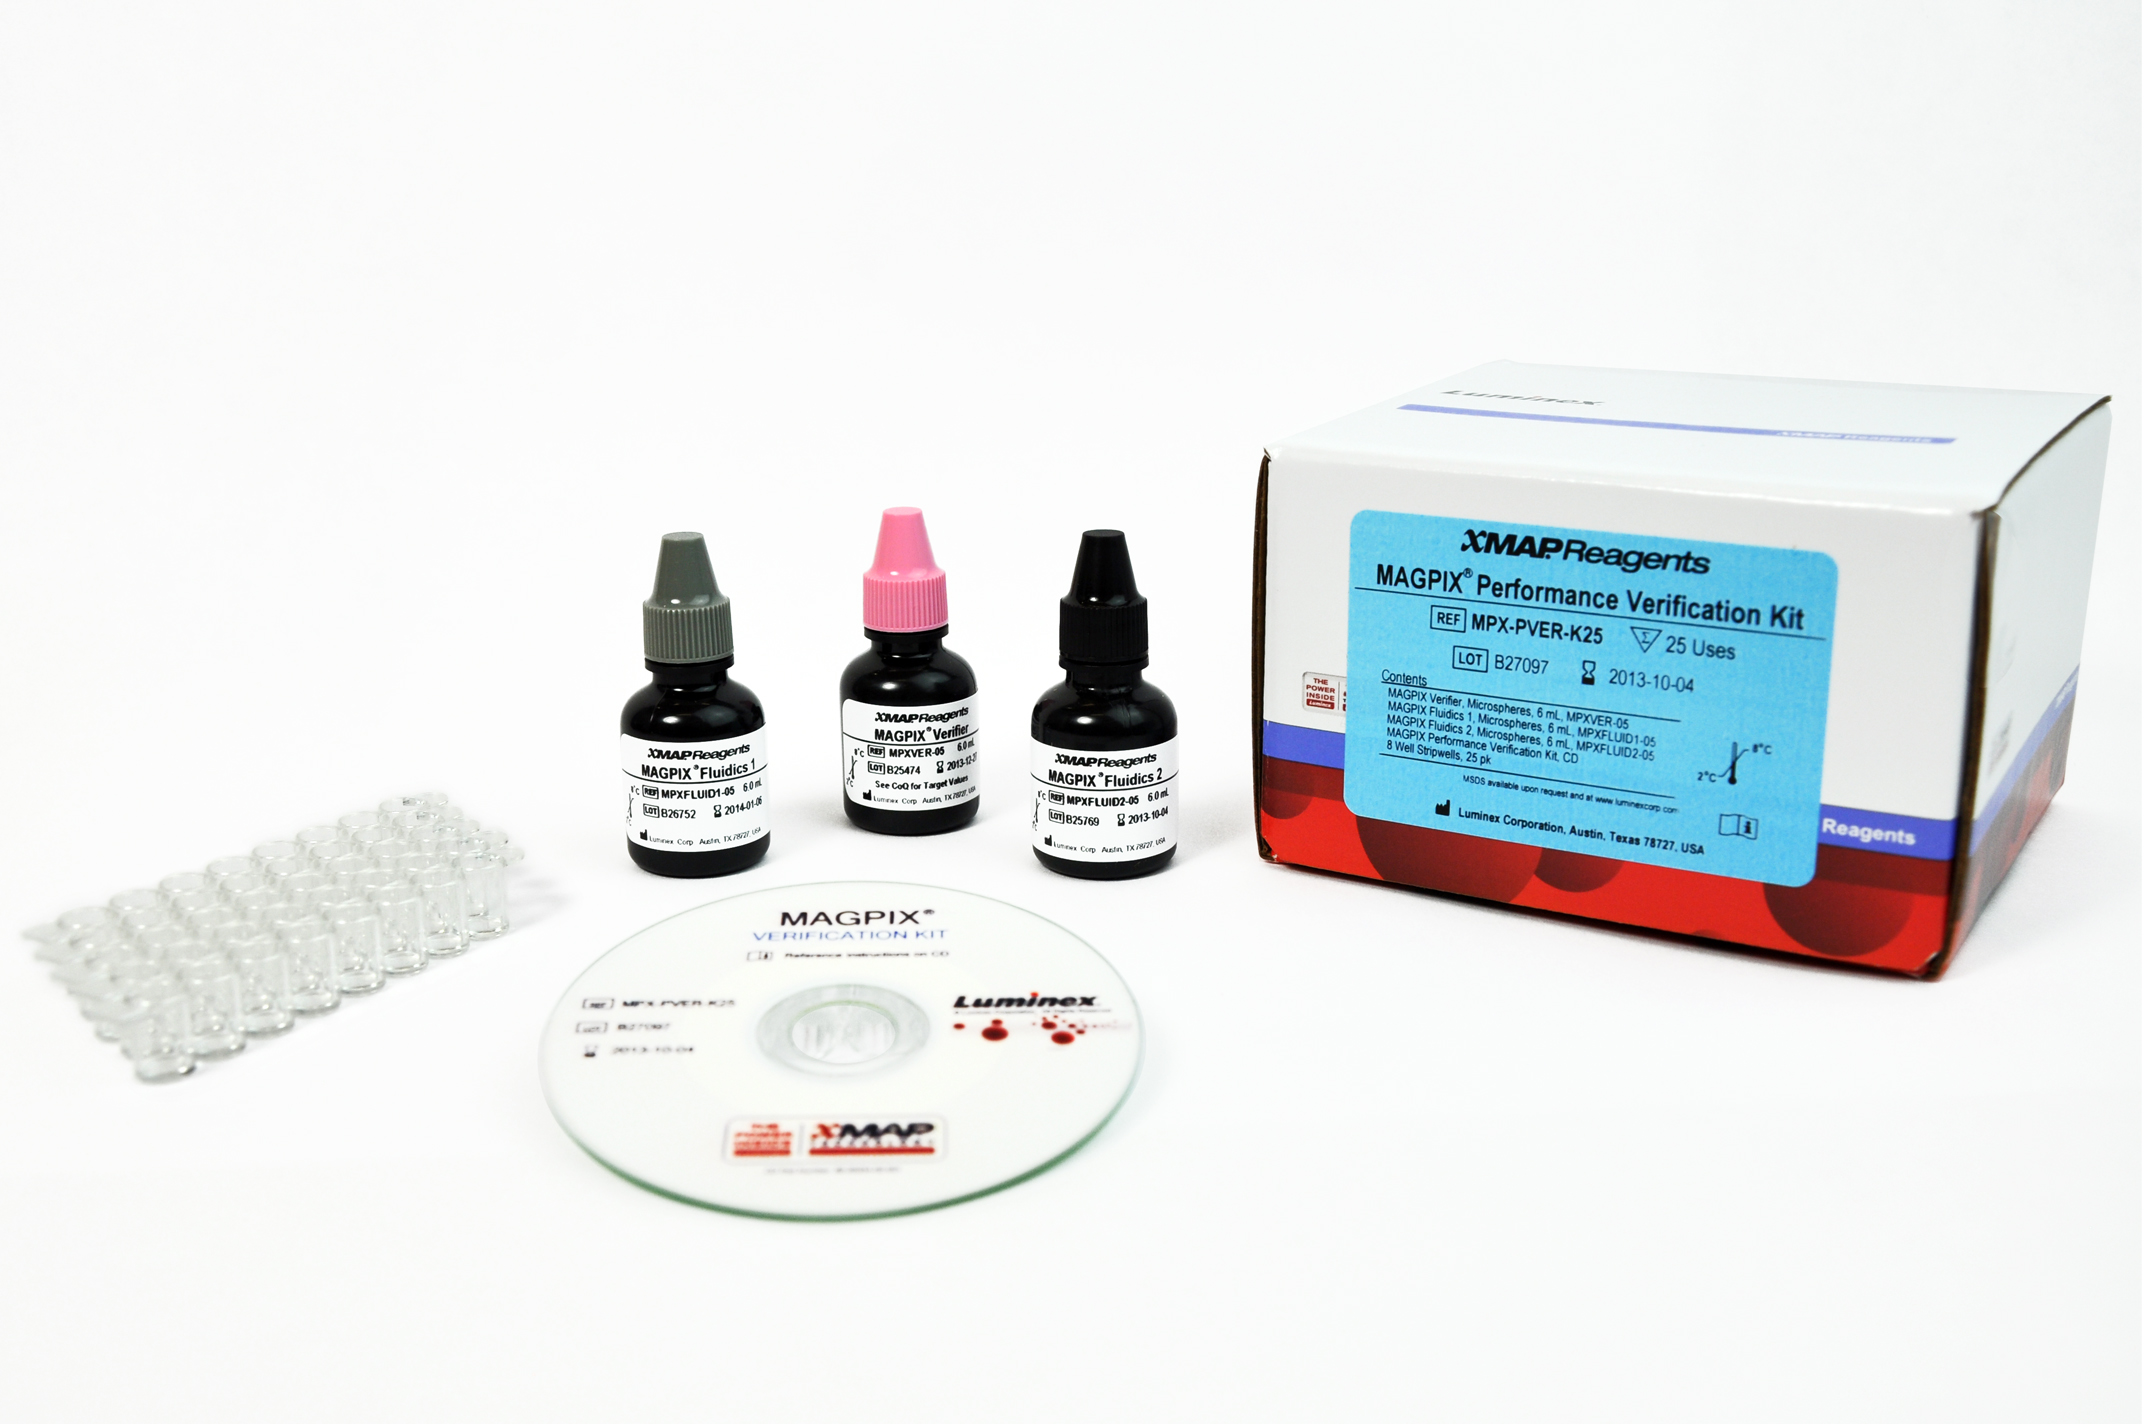 MAGPIX Performance Verification Kit